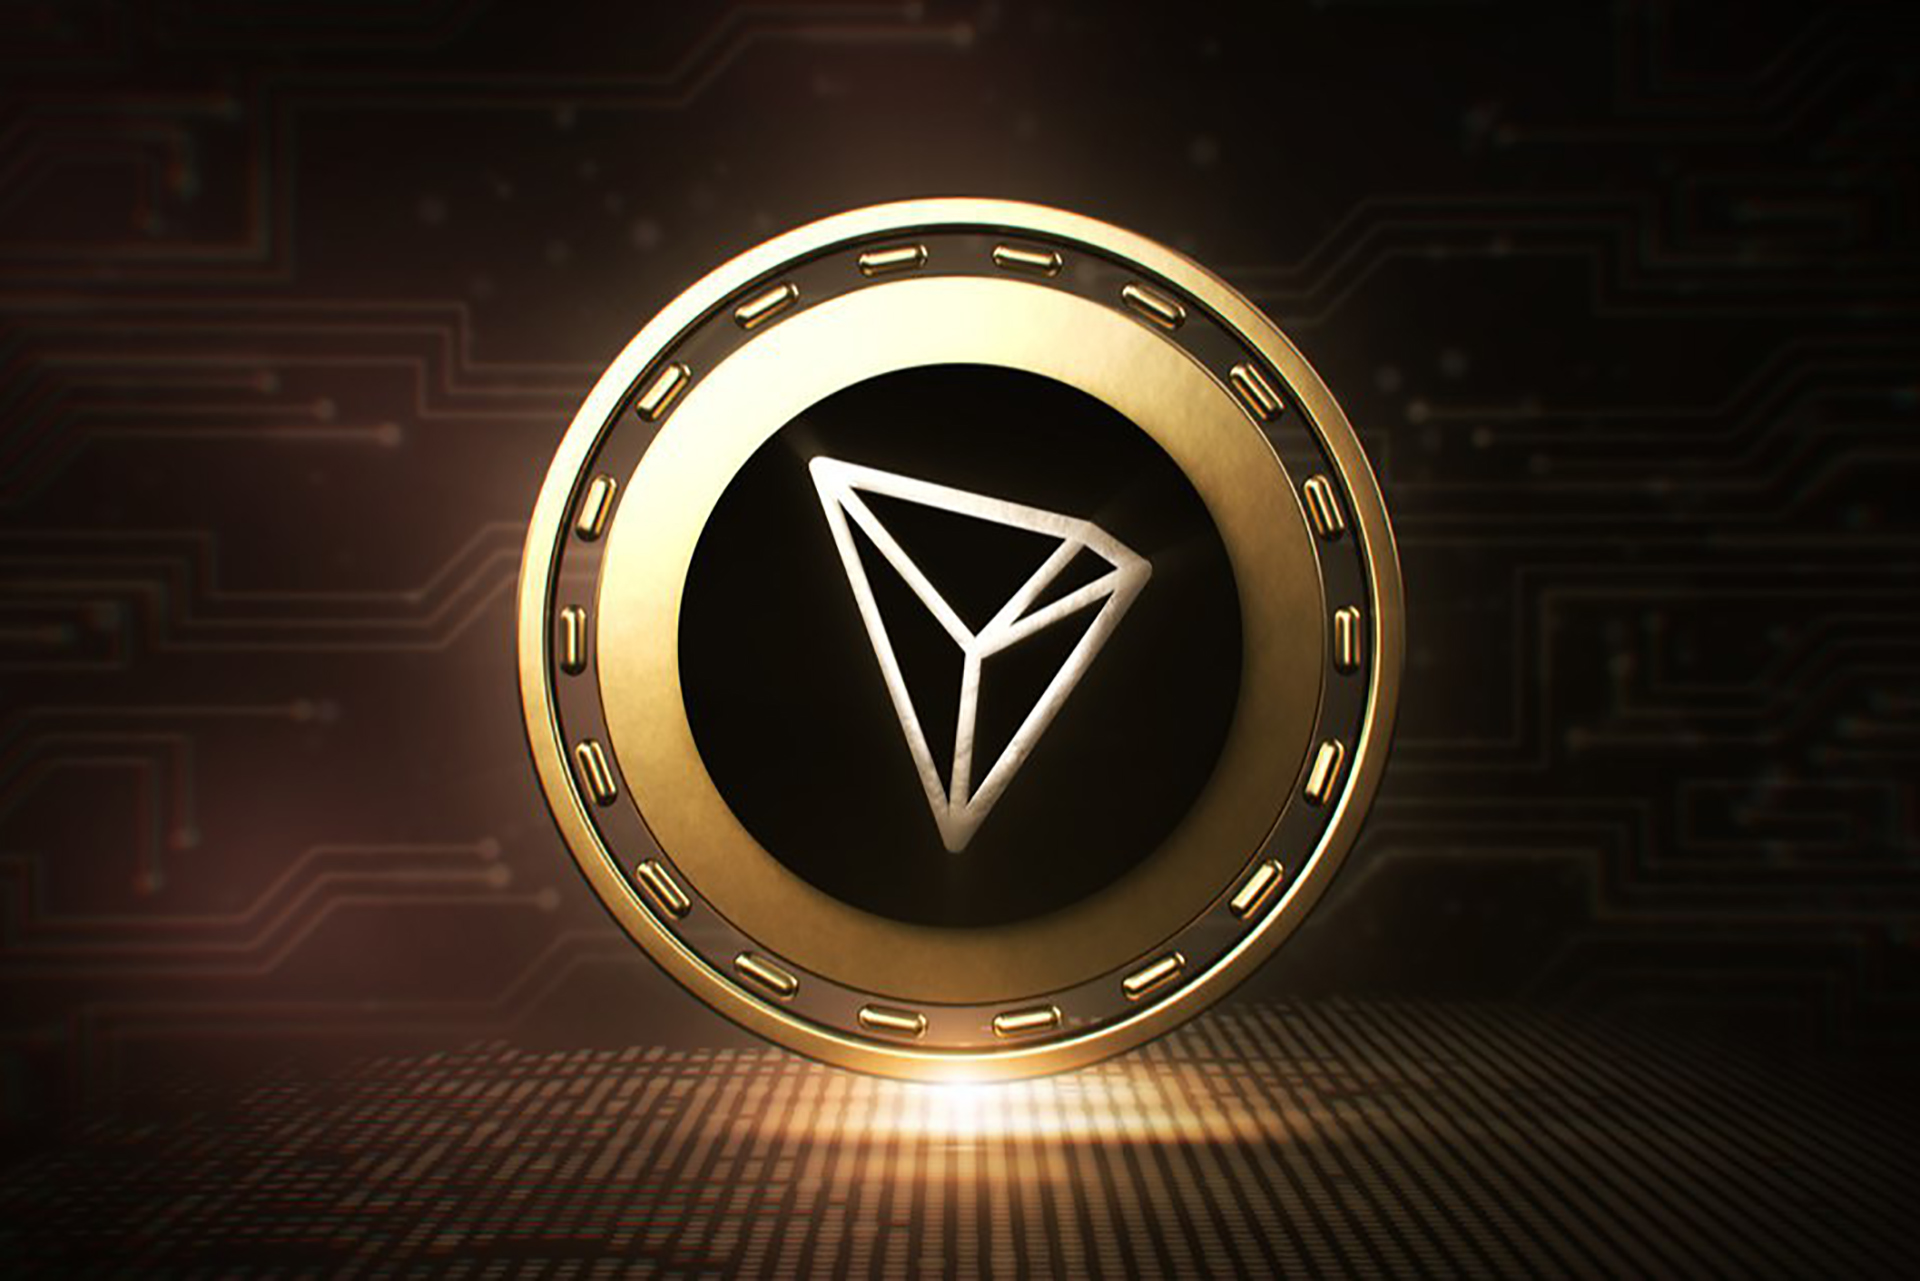 Stablecoin USDT Launched on Tron Blockchain